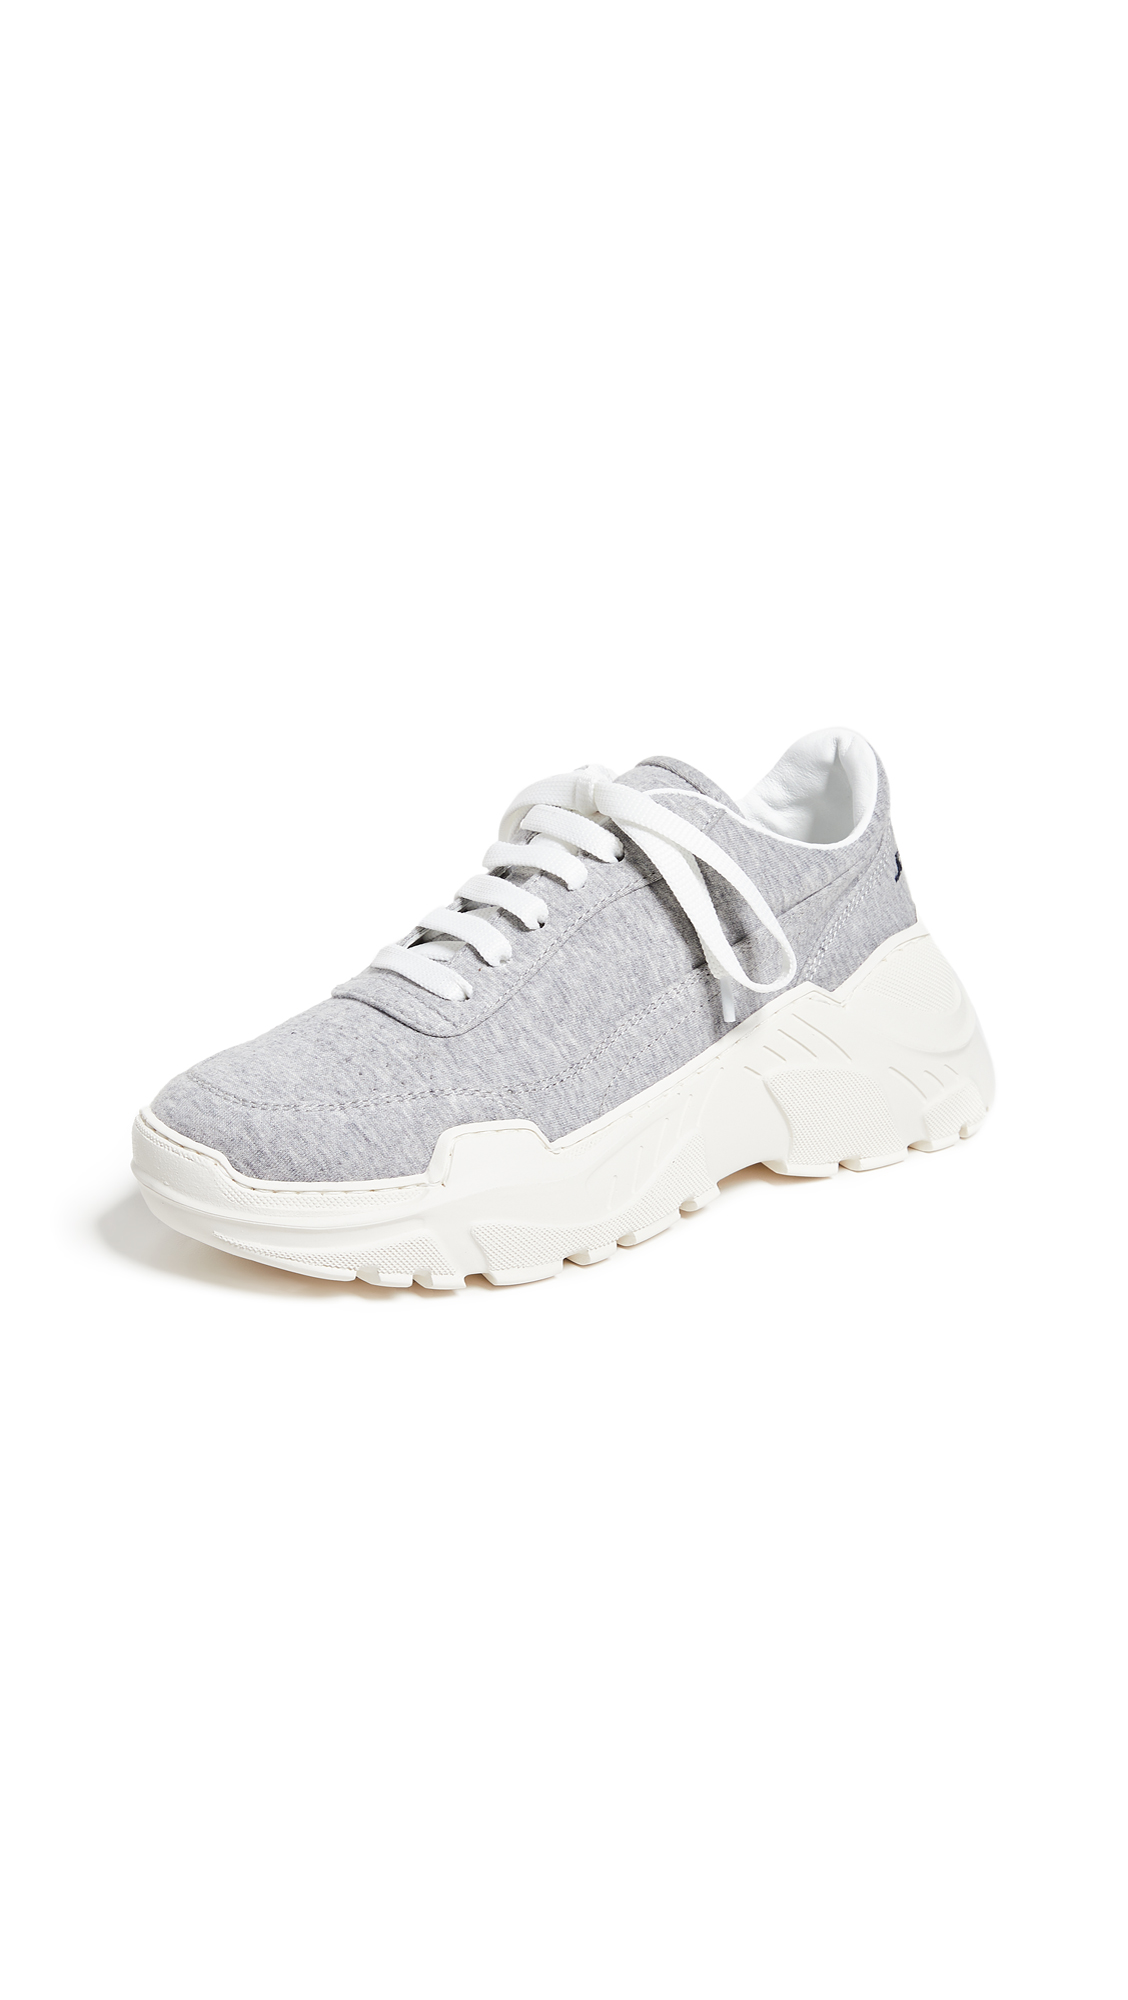 Joshua Sanders Zenith Lace Up Sneakers - Grey Jersey